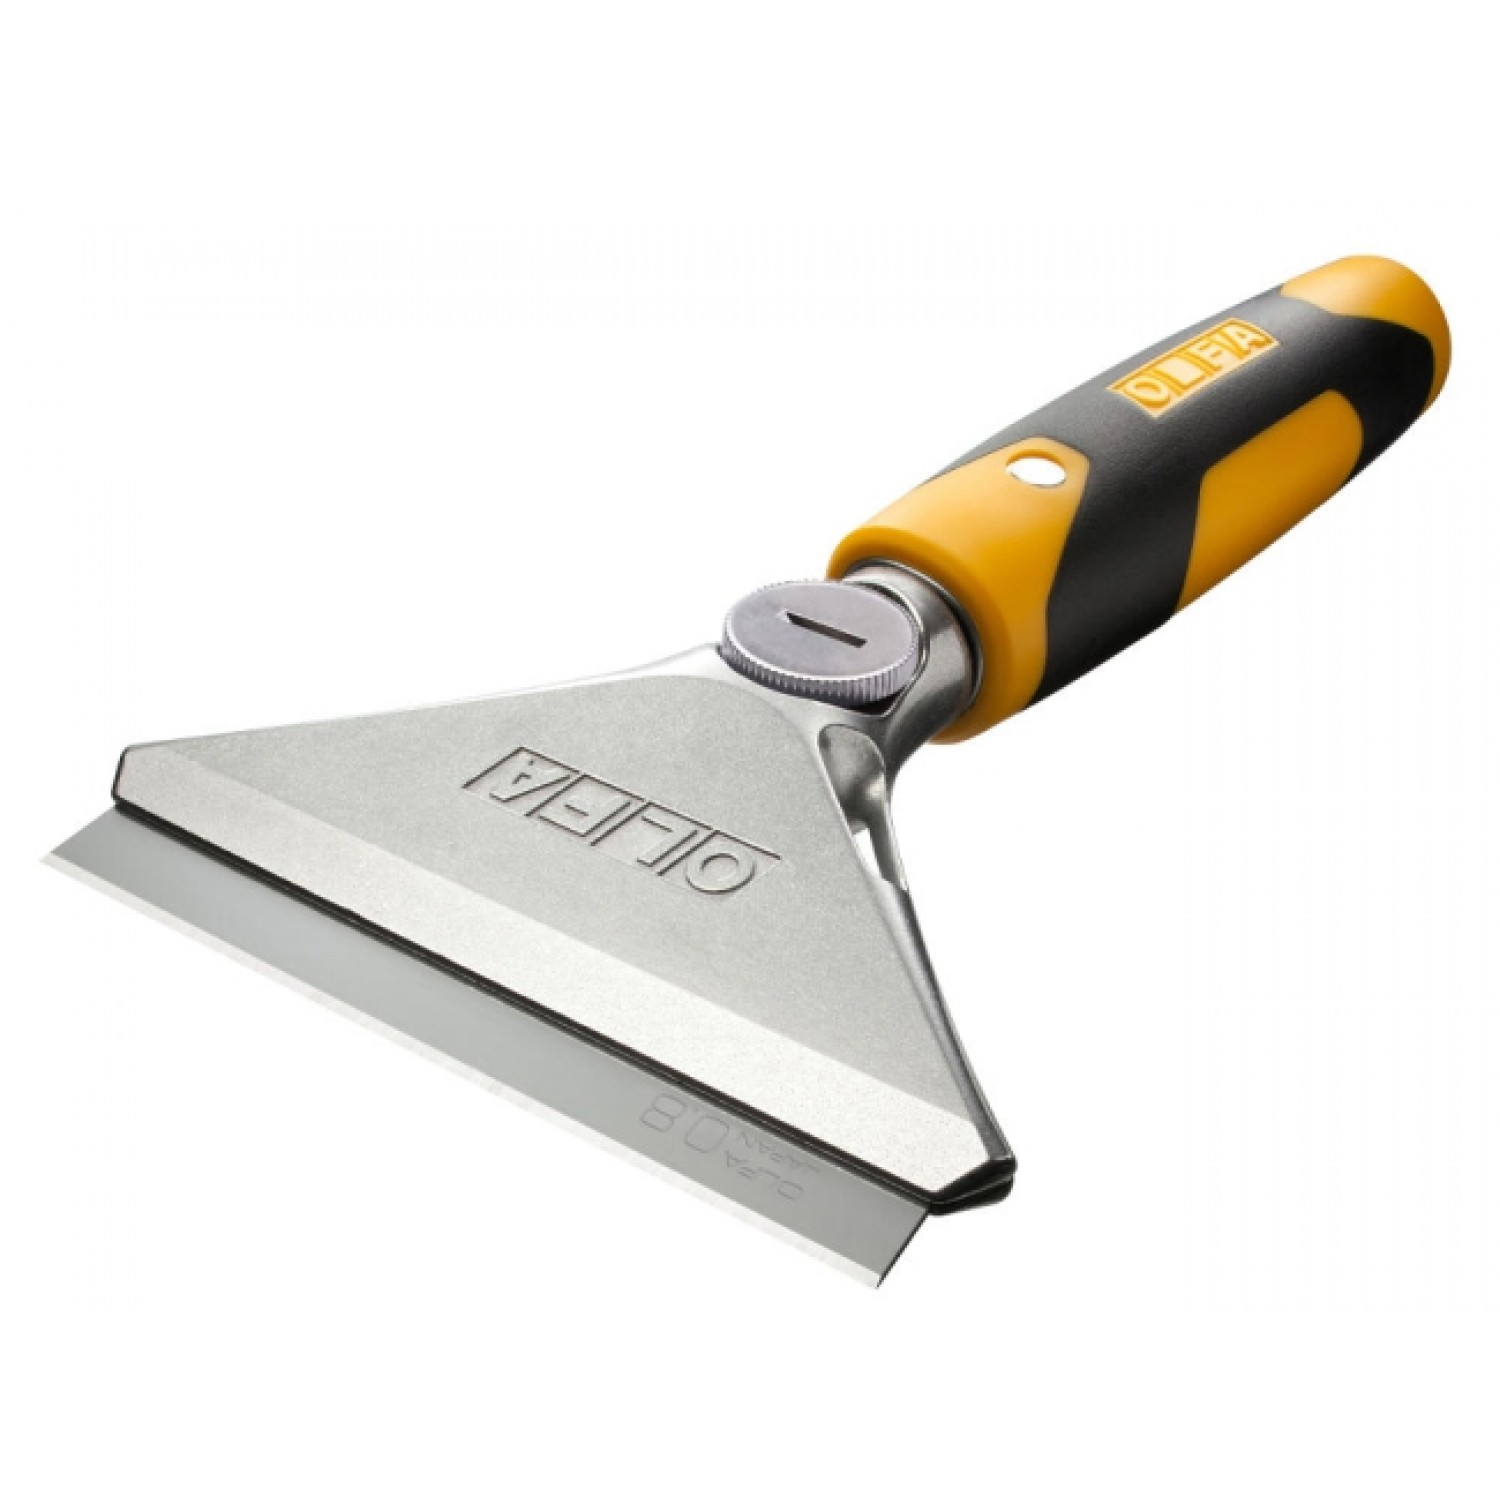 "OLFA XSR-200 Small 8"" Arm Extra Heavy-Duty Scraper, side view"